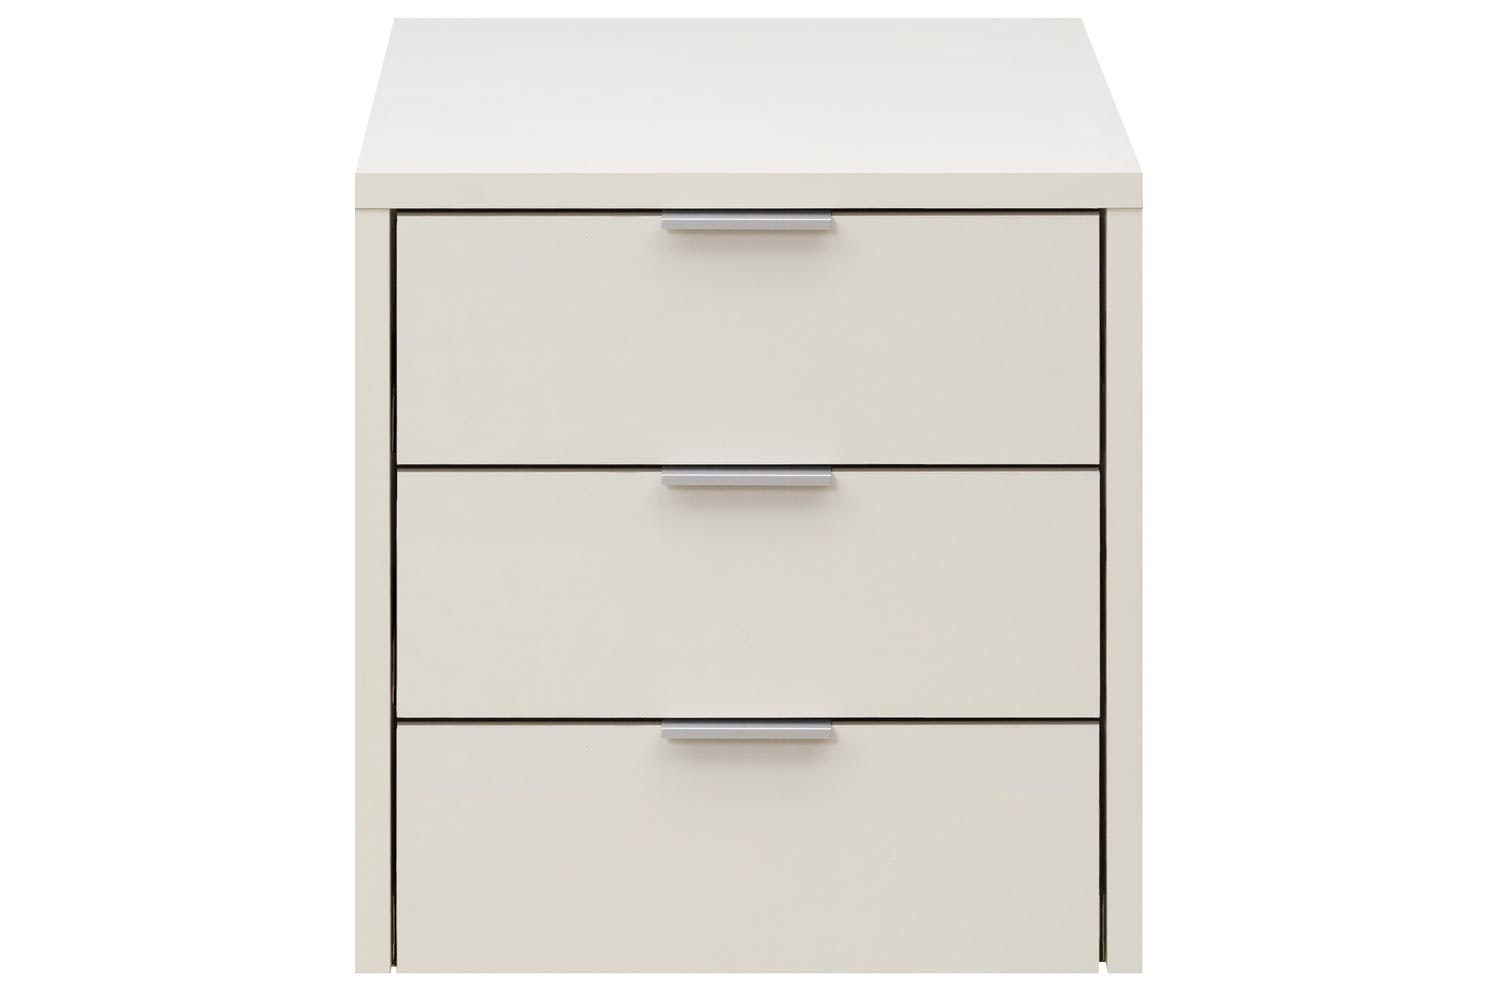 Jutzler 1 Corpus Drawer | Small